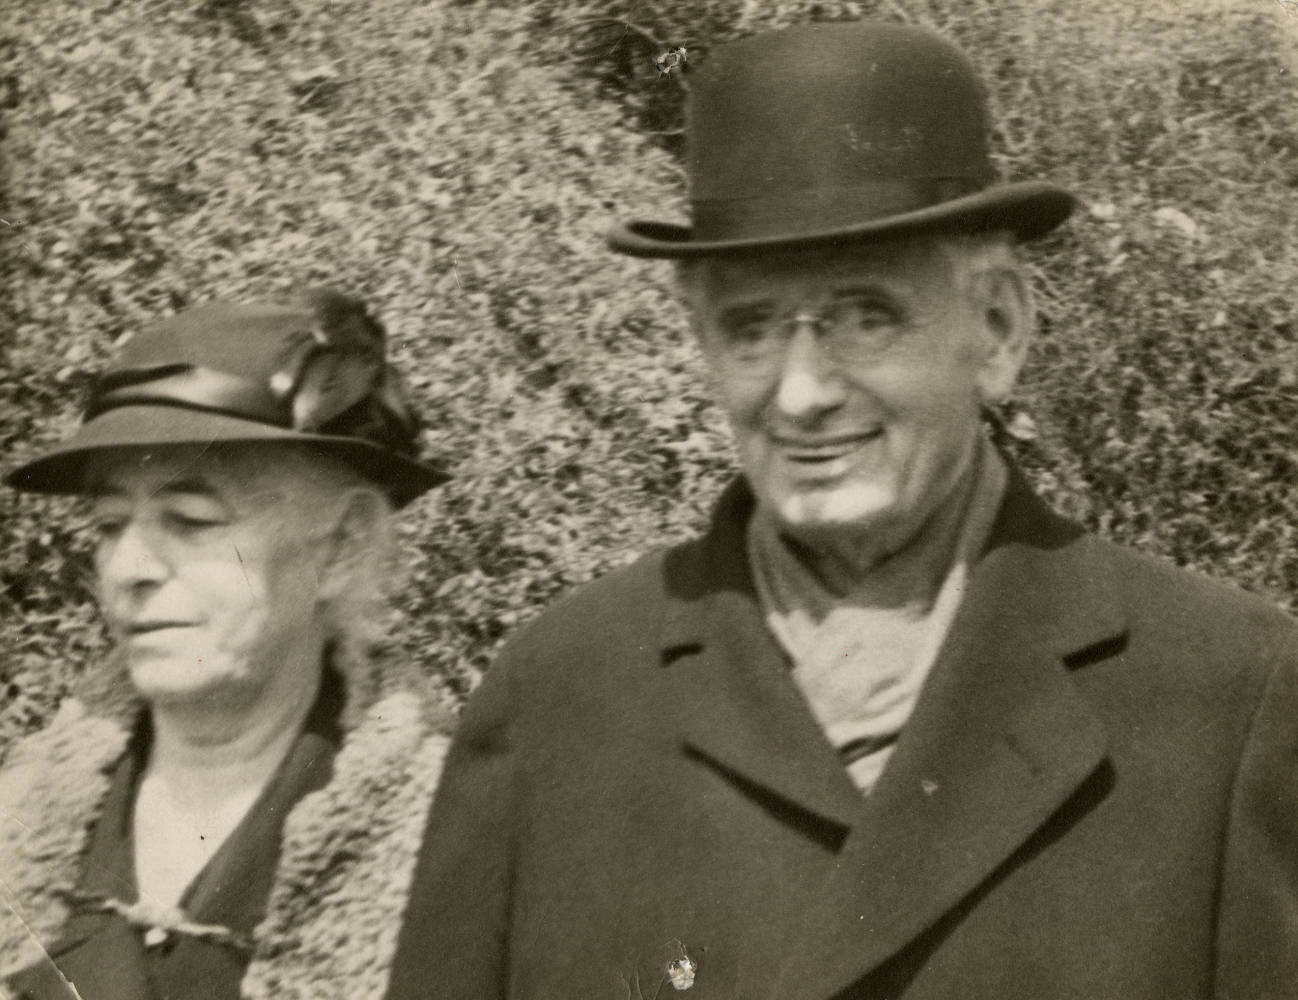 Historical photo of Louis and Alice Brandeis, ca. 1936.